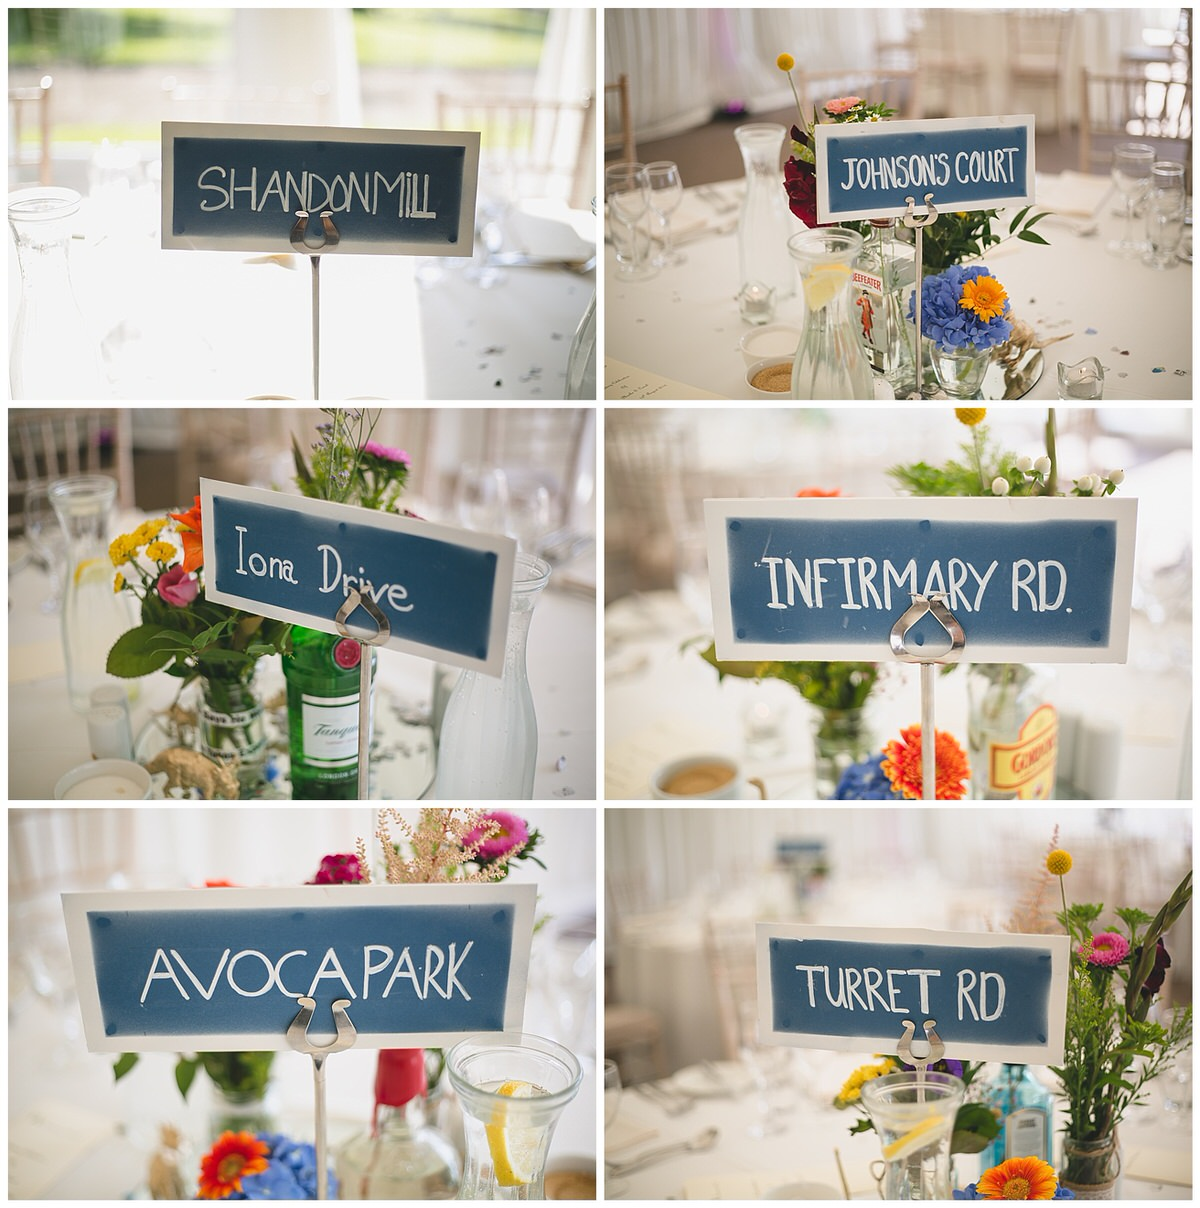 Cool DIY table name signs - Spray painted in the style of lrish street signs